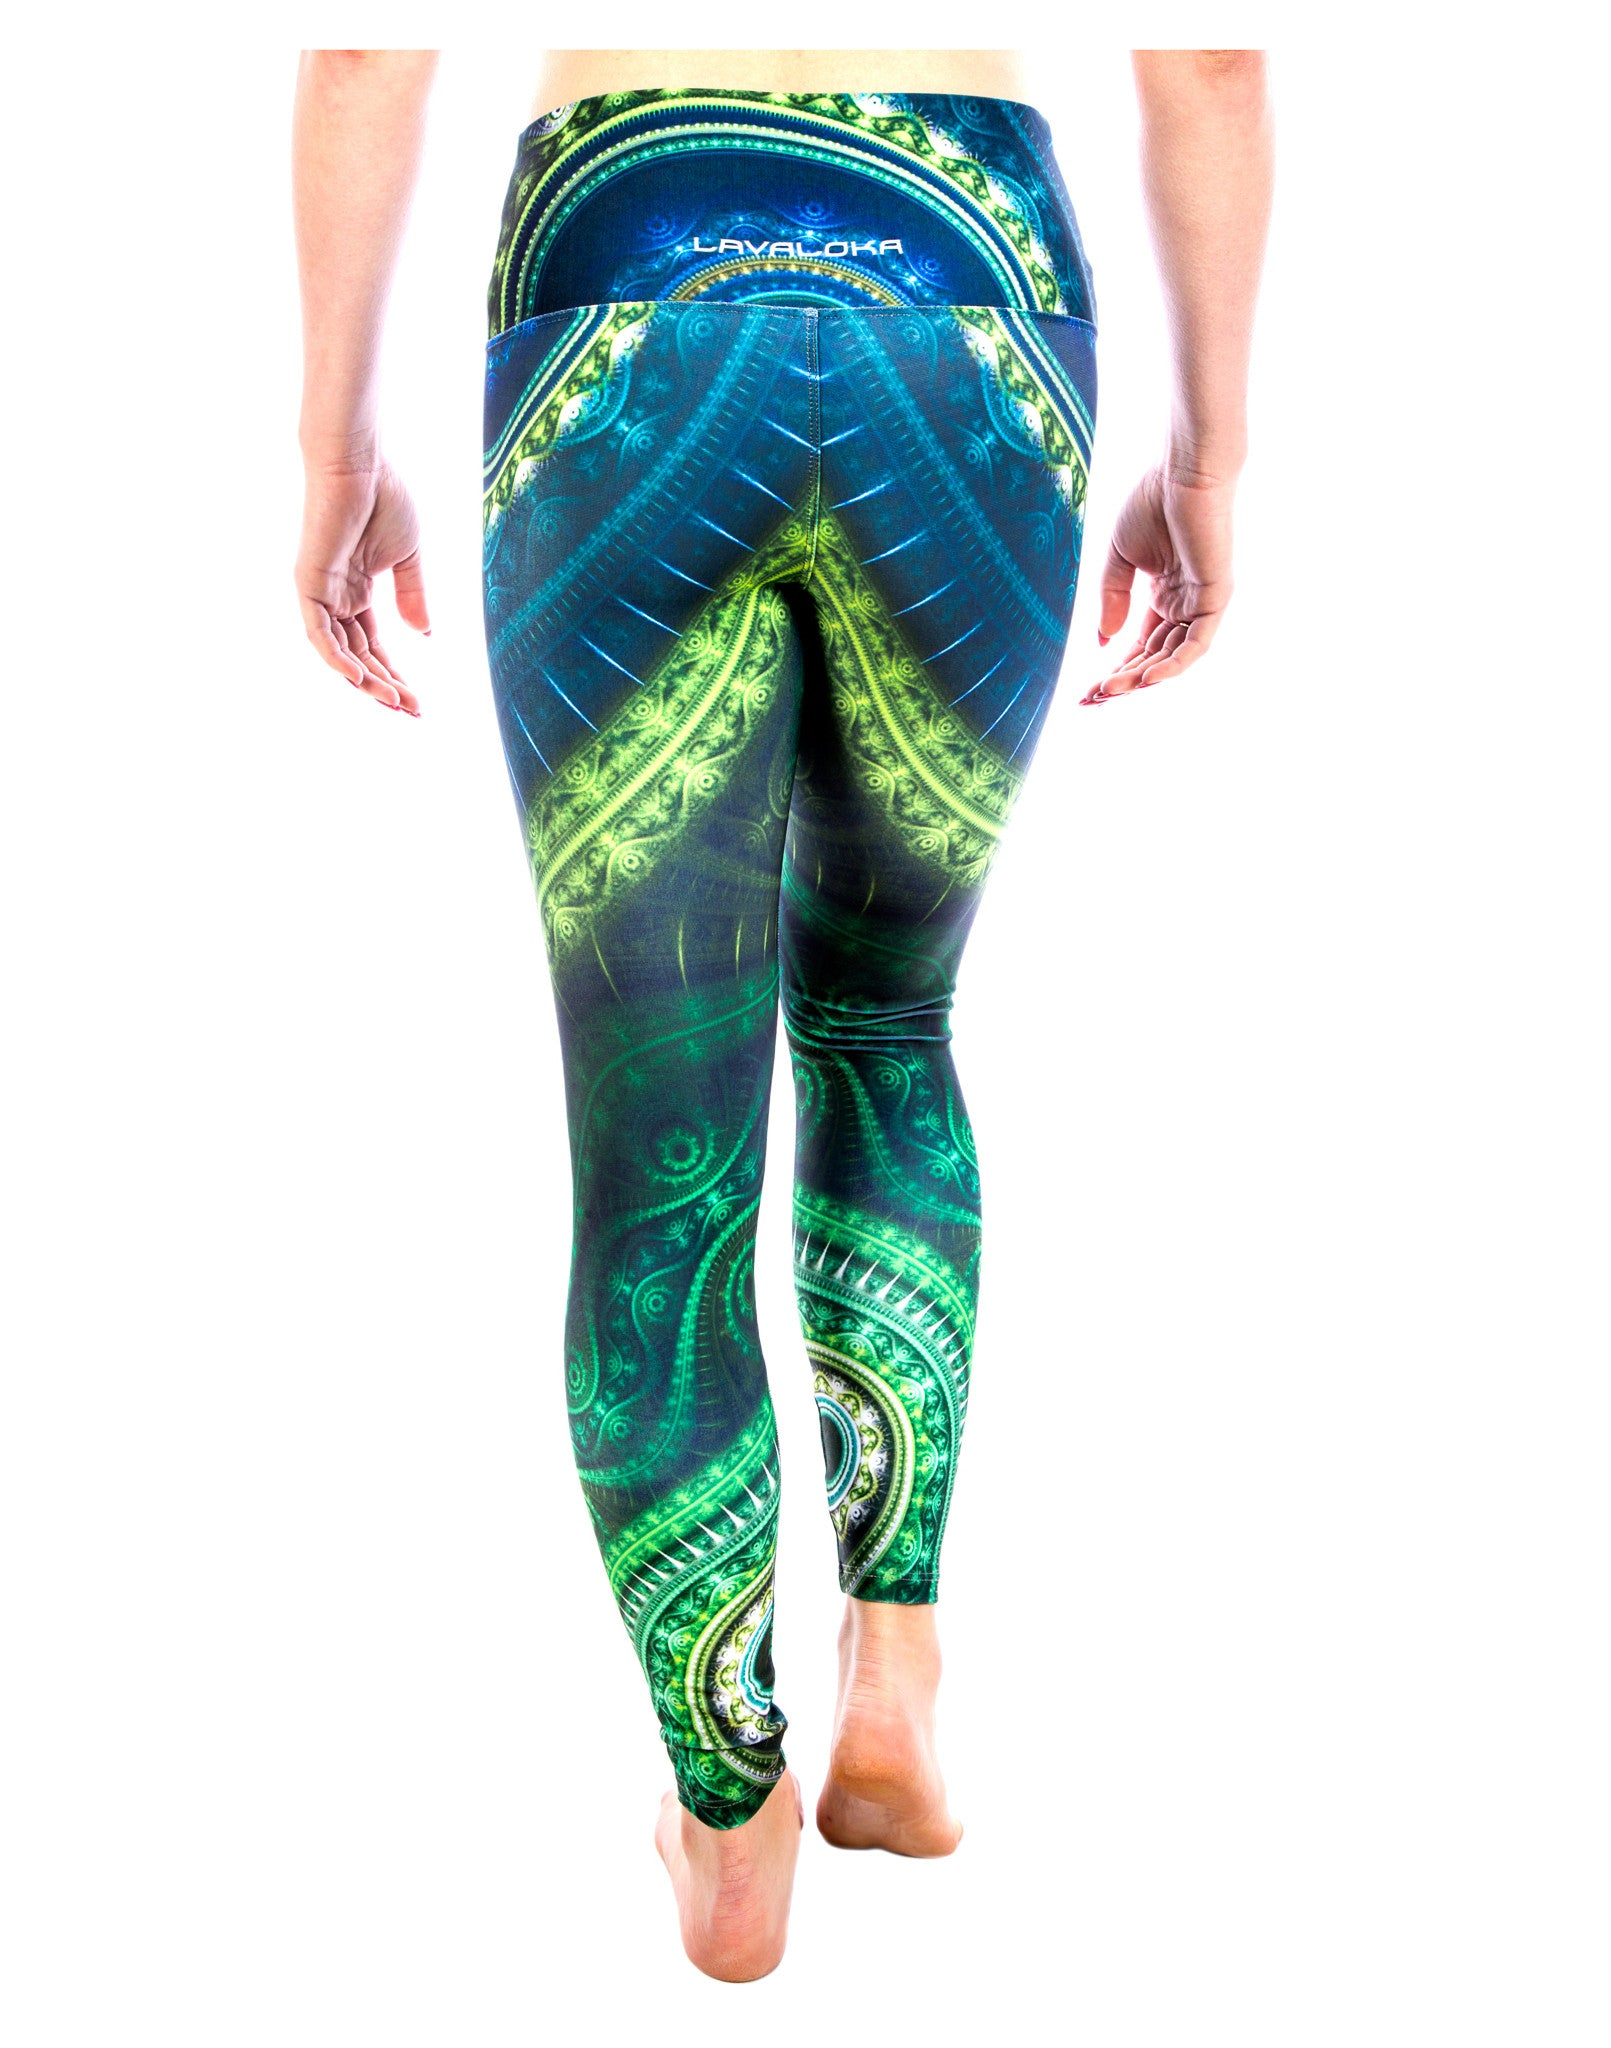 333dfbbc0470c ... Yoga Pants - Shimmer Shimmer Legging - Color Me Beautiful Collection by  LavaLoka